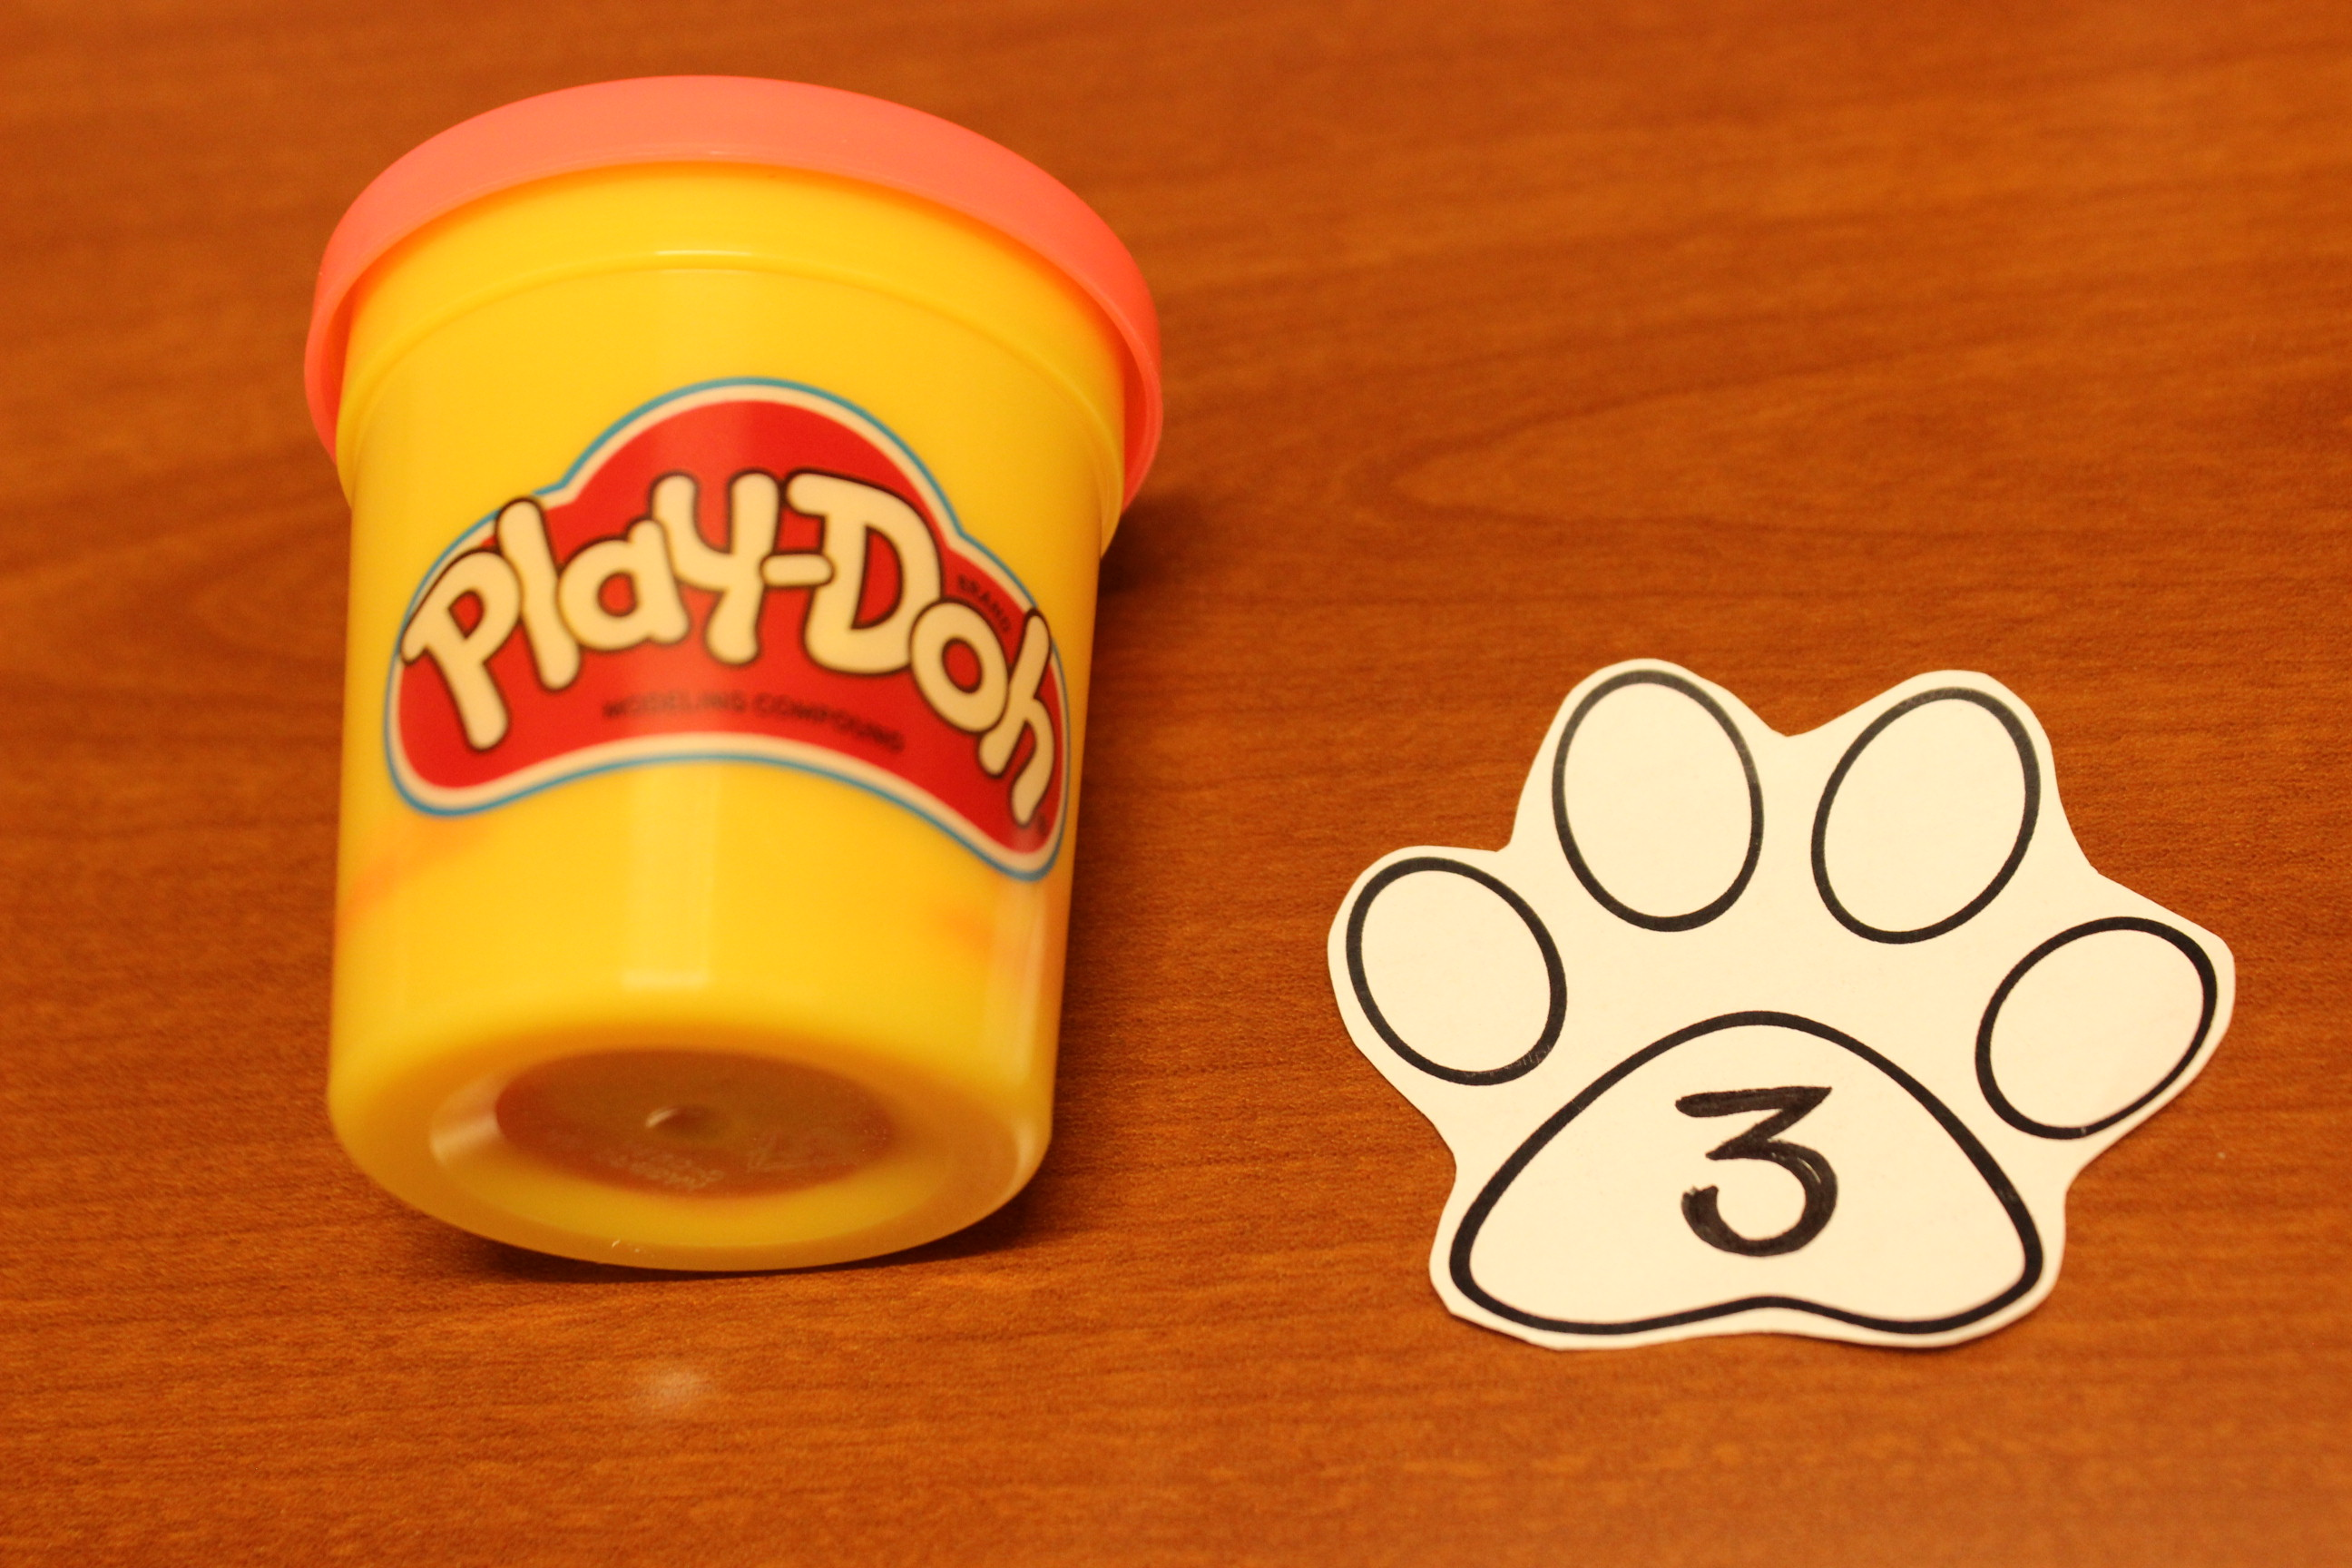 3 Paws Play-Doh